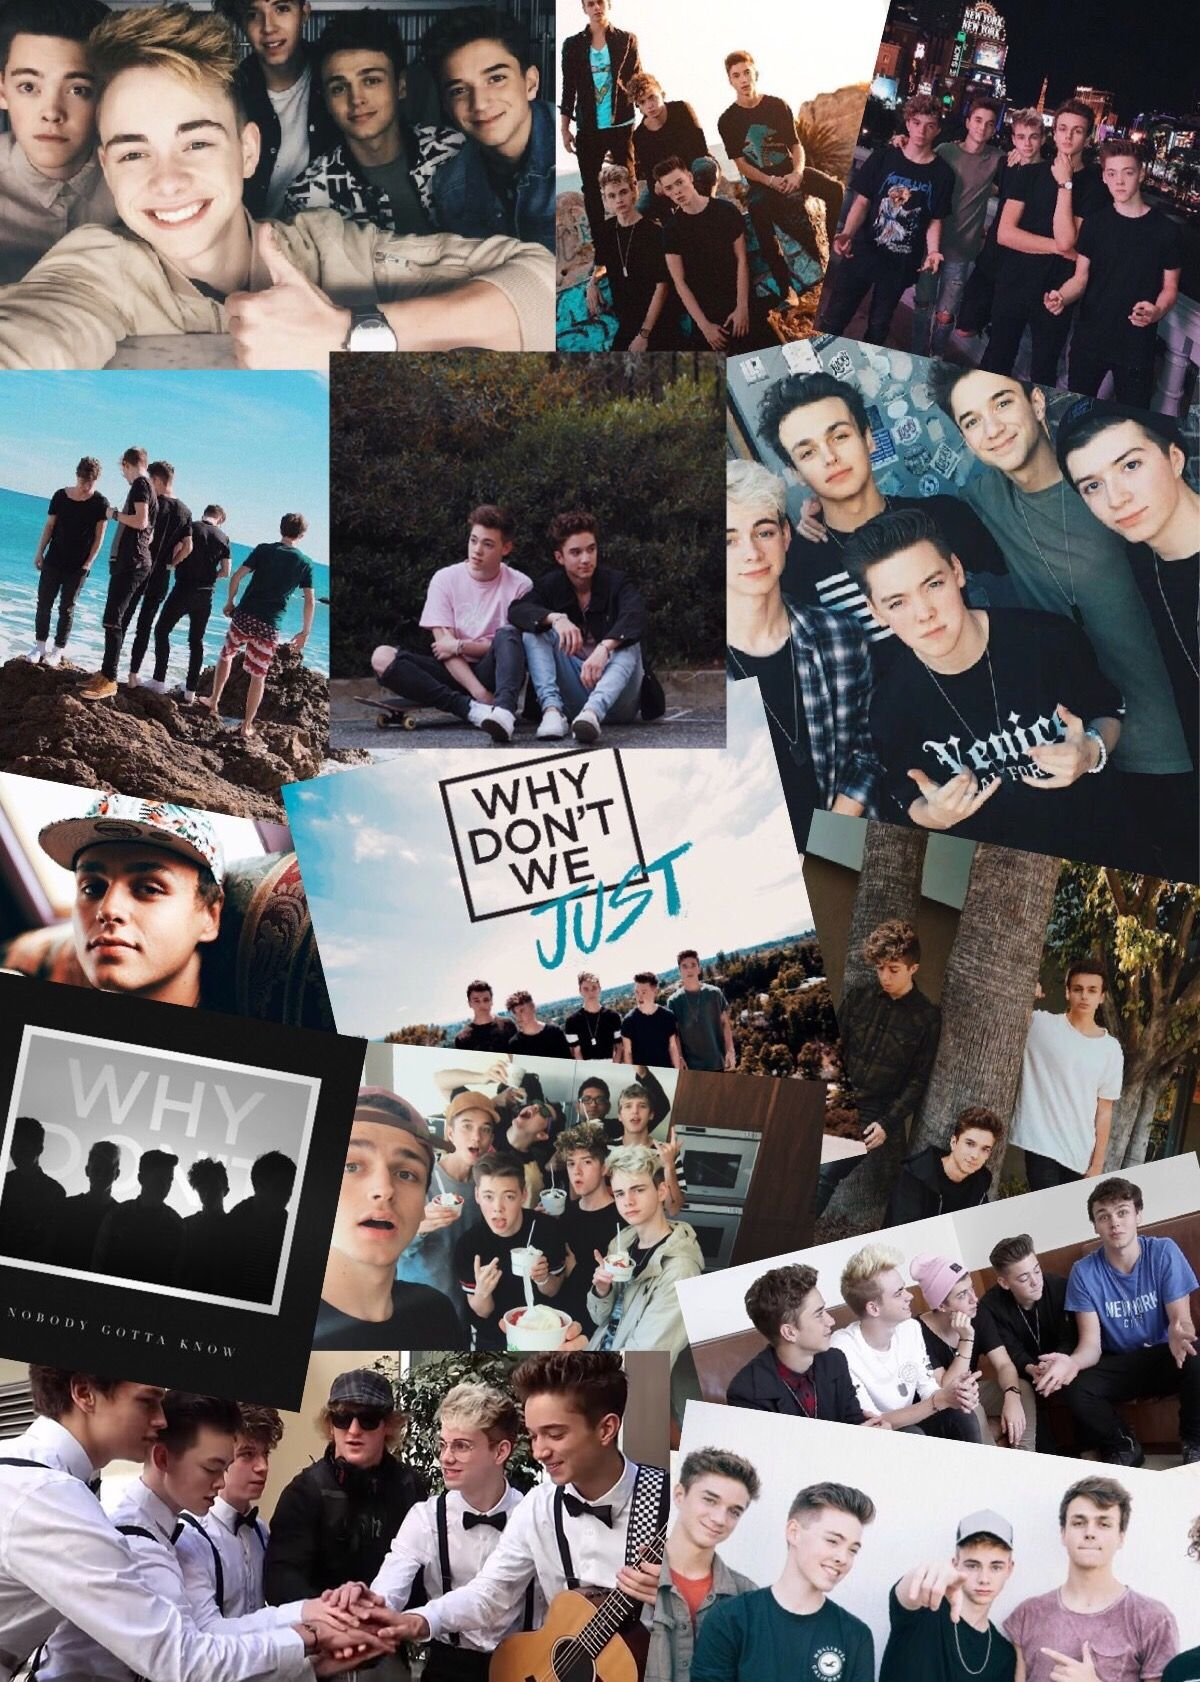 Why Don't We • Collage ) Boys wallpaper, Why dont we